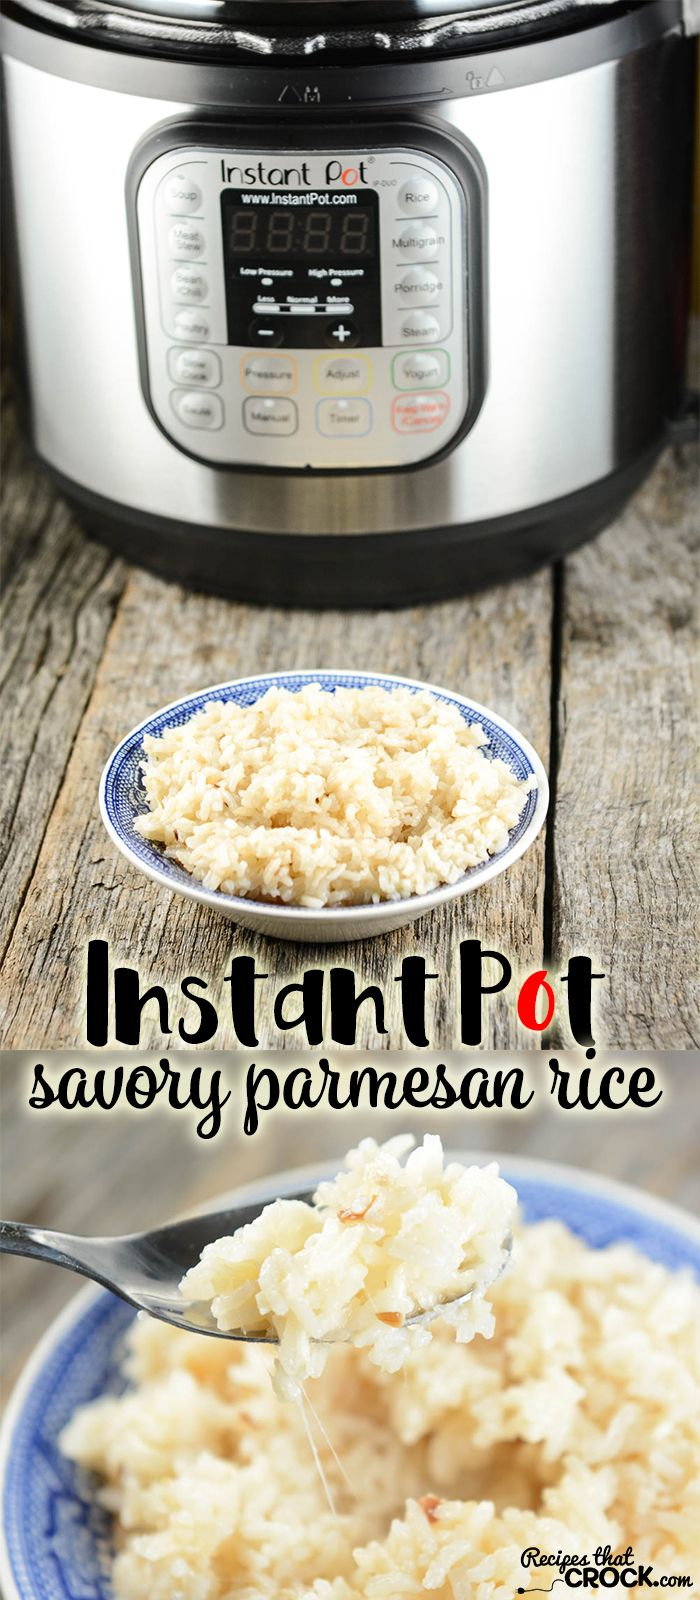 Electric Pressure Cooker Rice Recipe for Savory Parmesan Rice. This is one of our favorite Instant Pot recipes!